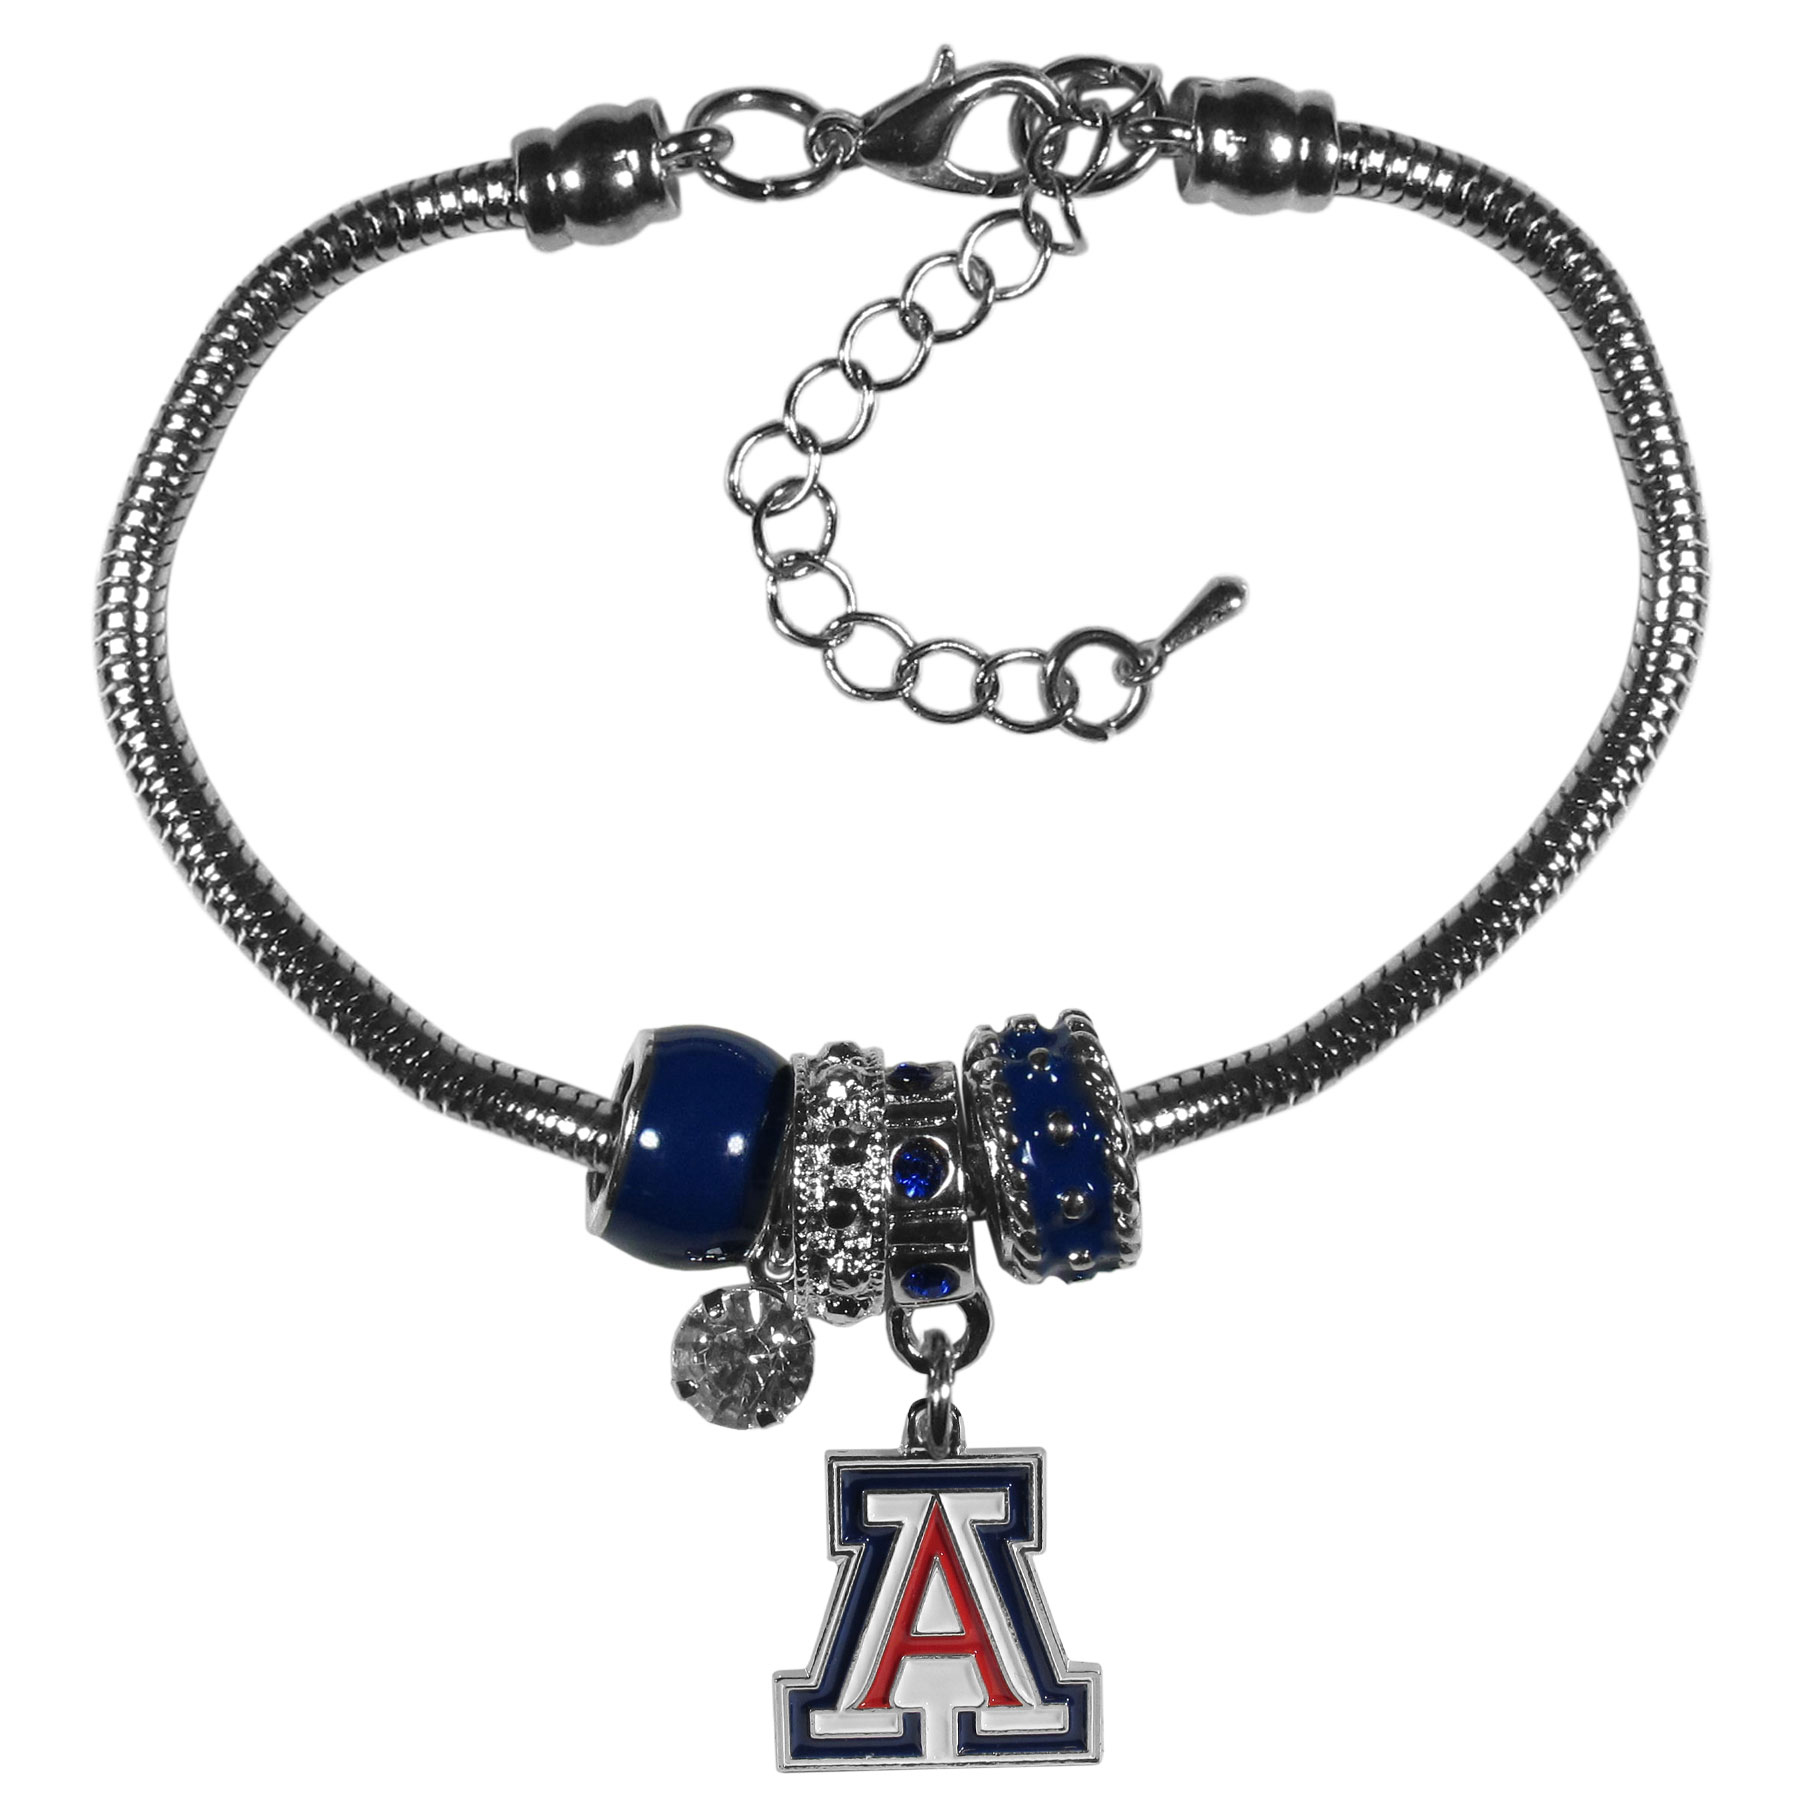 Arizona Wildcats Euro Bead Bracelet - We have combined the wildly popular Euro style beads with your favorite team to create our  Arizona Wildcats bead bracelet. The 7.5 inch snake chain with 2 inch extender features 4 Euro beads with enameled team colors and rhinestone accents with a high polish, nickel free charm and rhinestone charm. Perfect way to show off your team pride.